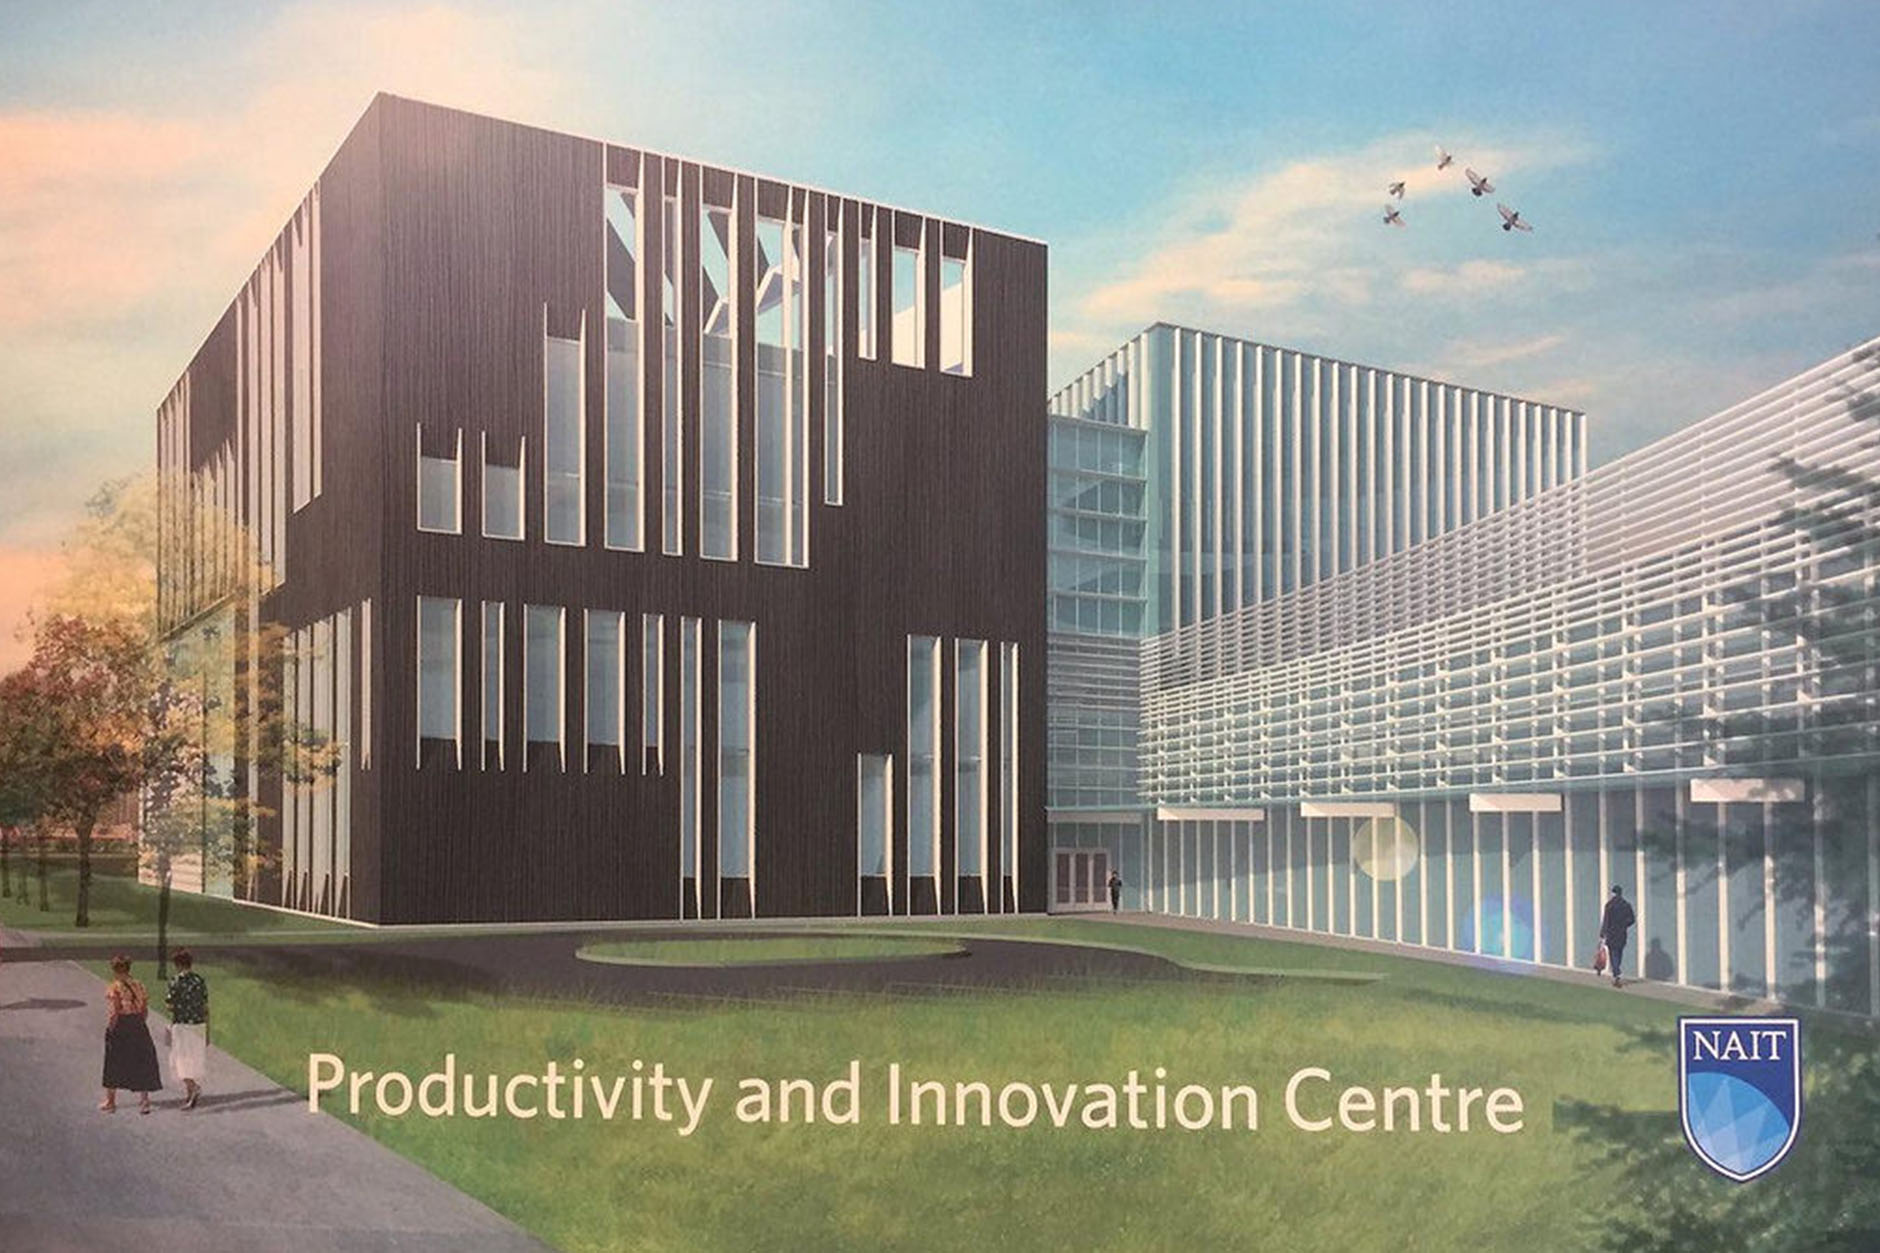 Construction Project Update: NAIT's Productivity and Innovation Centre